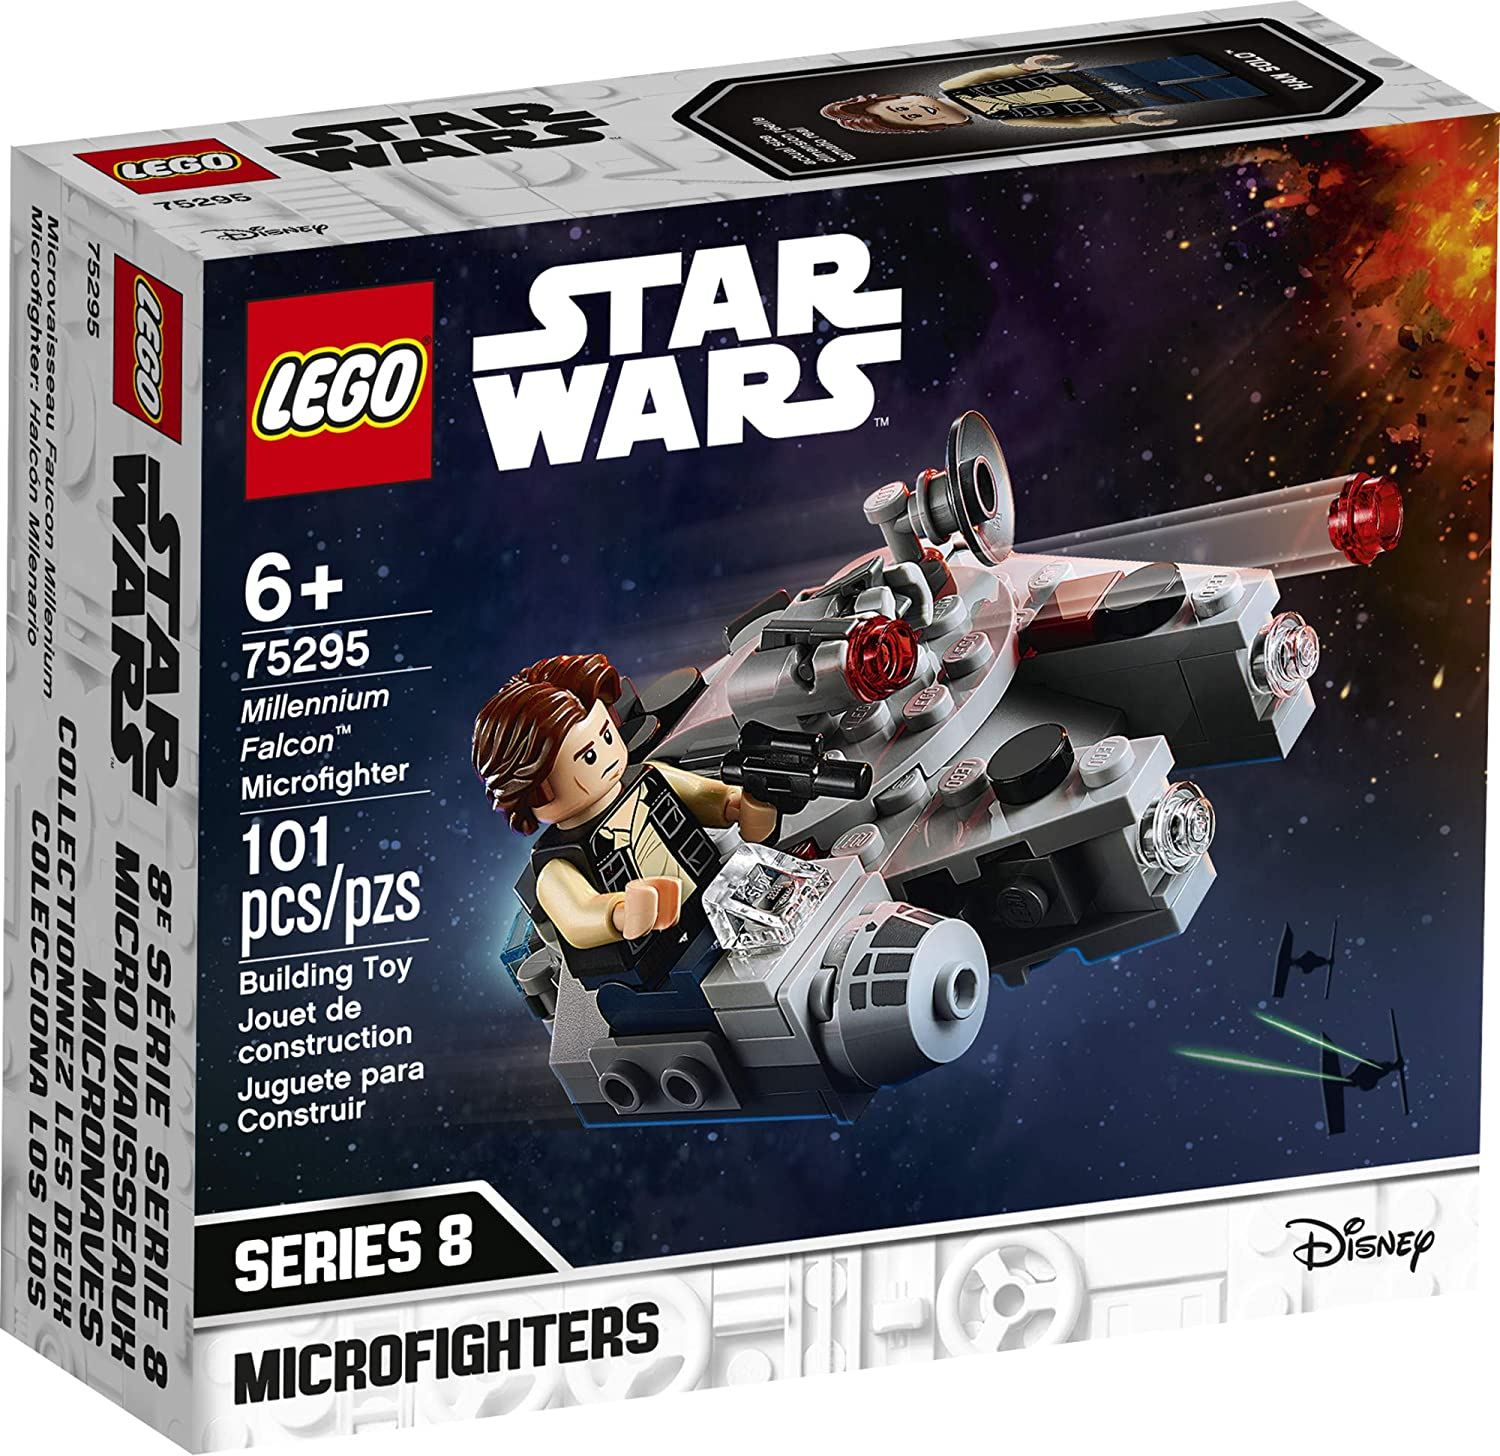 LEGO Star Wars - Microfighter Millennium Falcon™ 75295